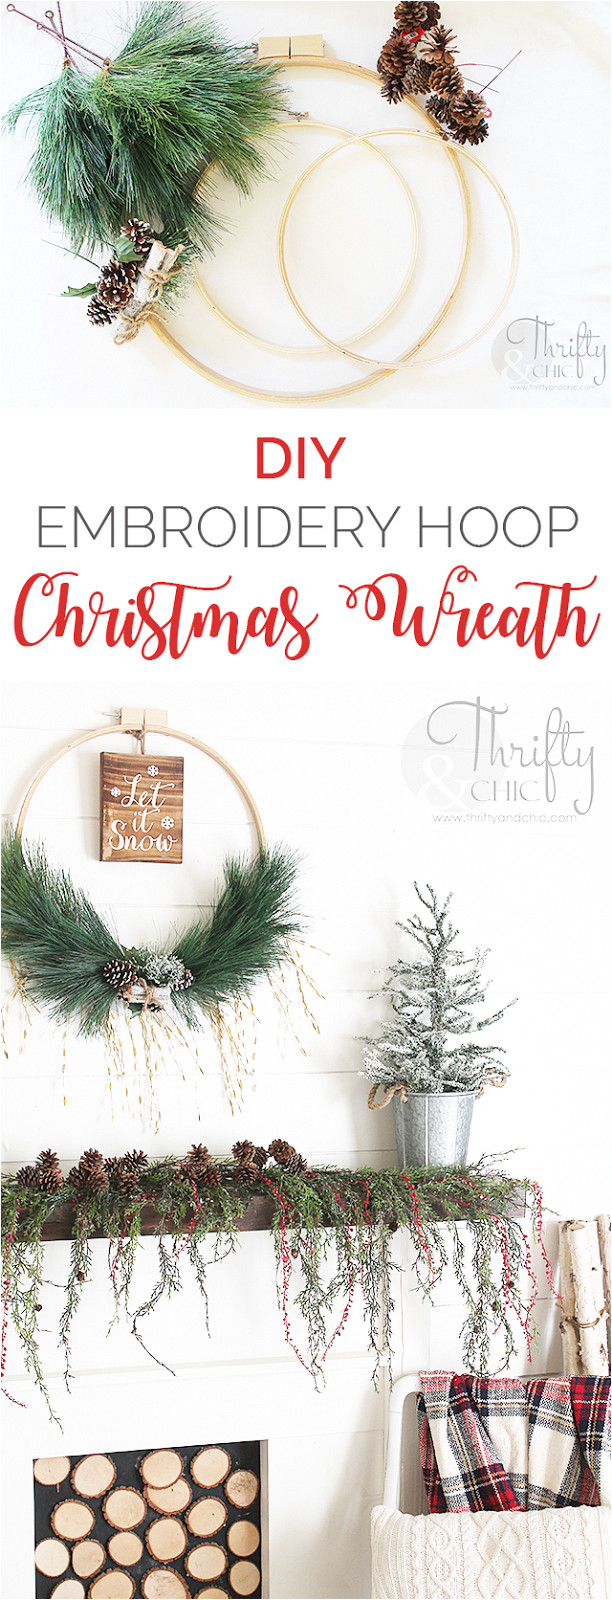 diy christmas wreath made with an embroidery hoop diy christmas decor and decorating ideas farmhouse christmas ideas hobbylobby hobbylobbymade